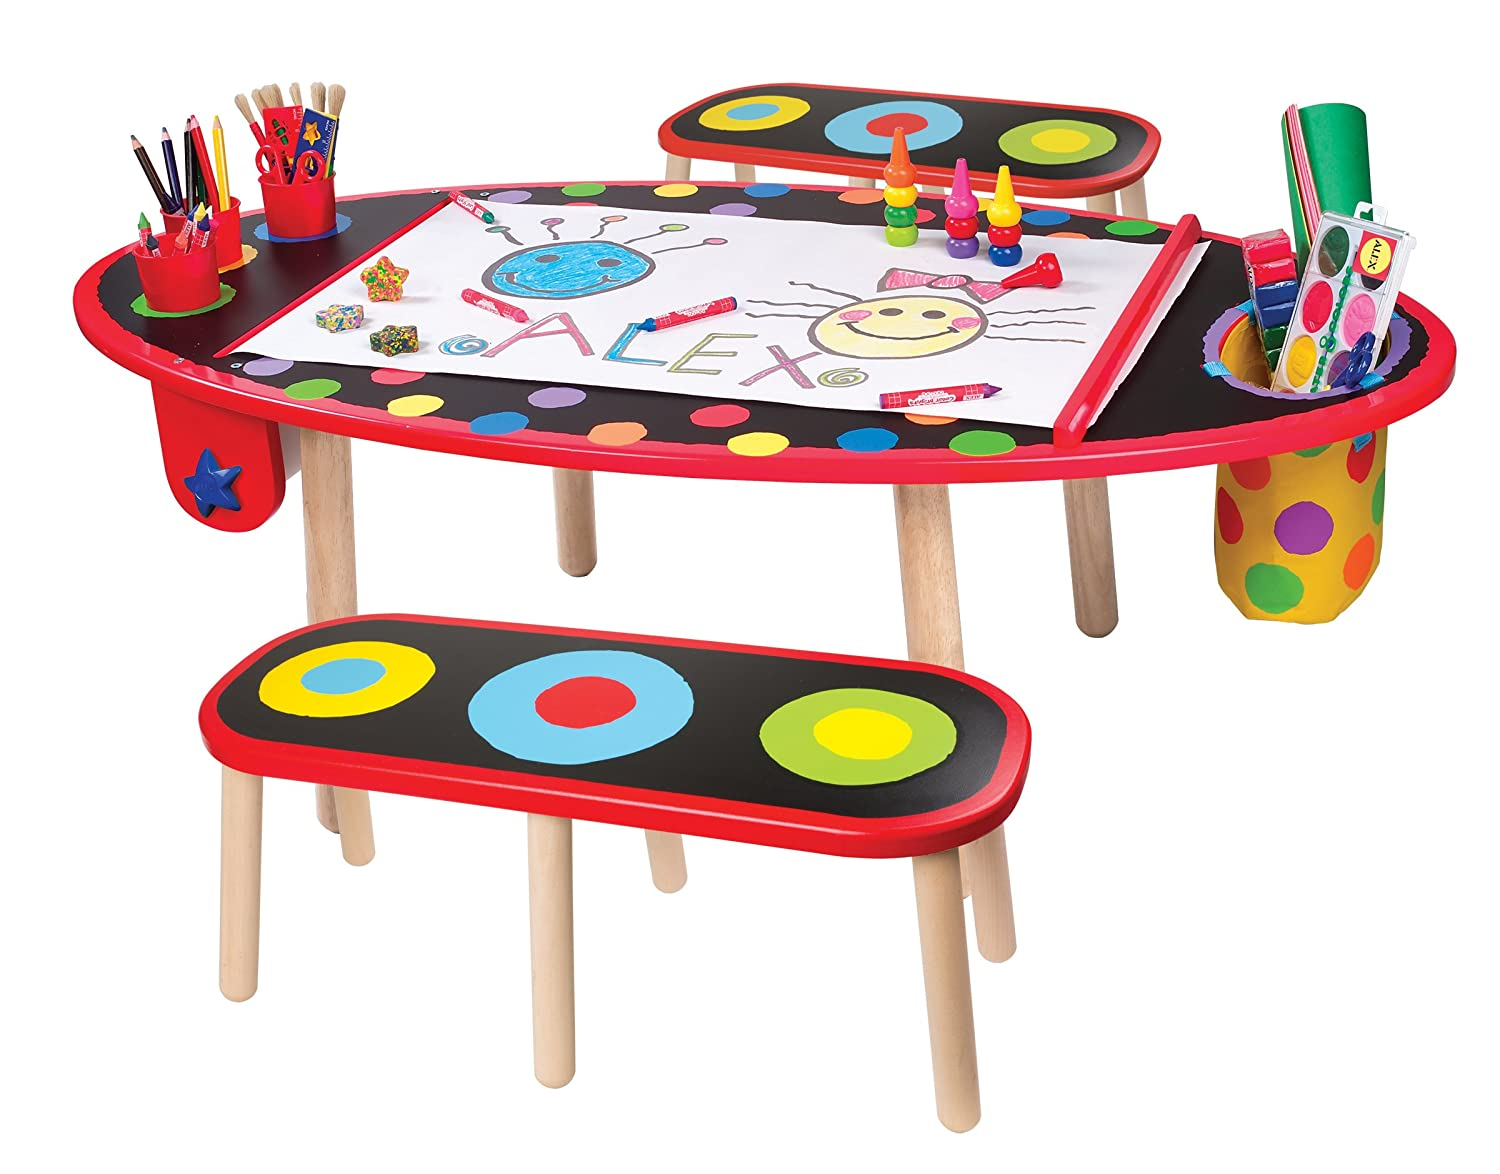 children's art table with paper roll